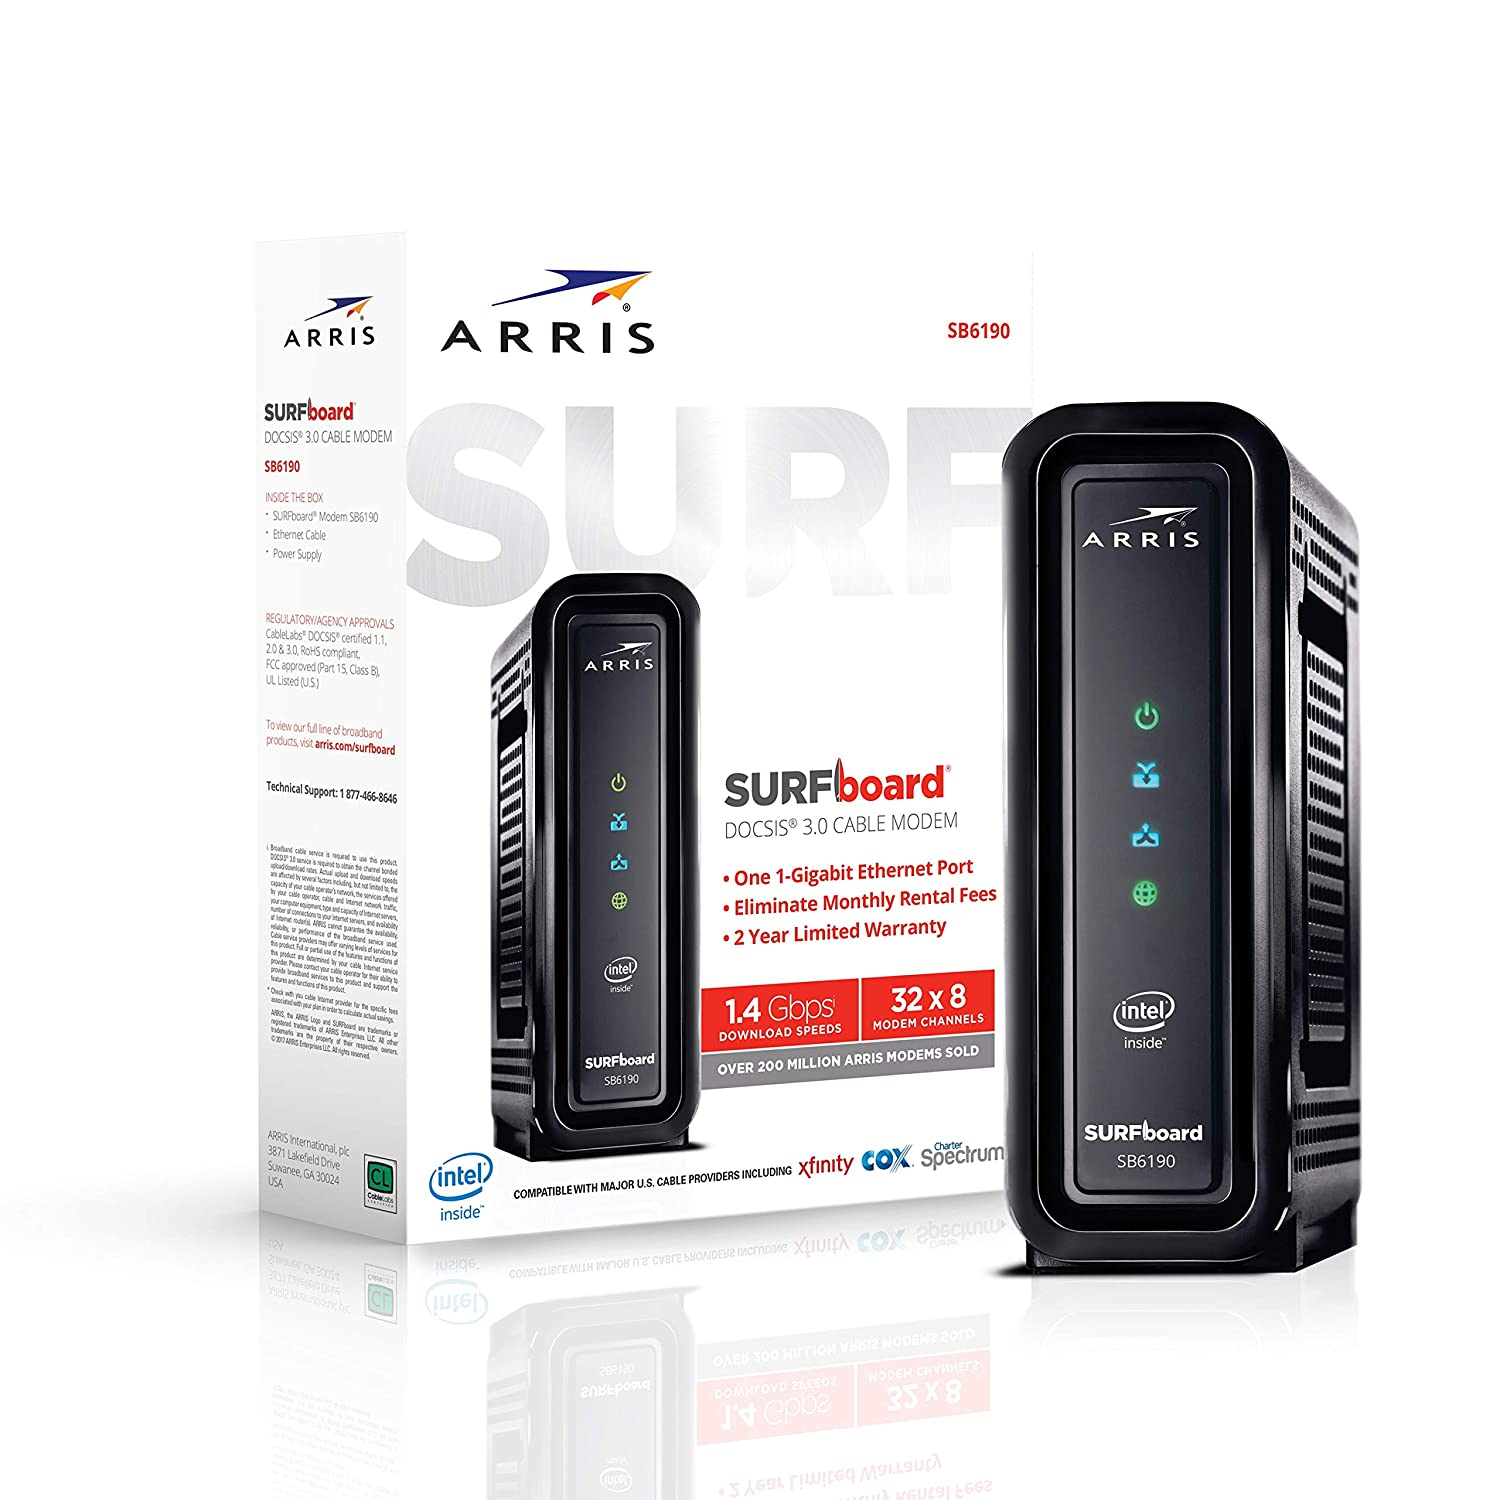 ARRIS SURFboard (32x8) Docsis 3.0 Cable Modem, Certified for Xfinity, on comcast cable hook up diagram, xfinity remote programming, xfinity installation diagram, xfinity hd wiring, comcast phone installation diagram, xfinity xfinity tv diagrams, comcast cable box connection diagram, xfinity dta box diagram, comcast xfinity diagram, comcast install diagram, xfinity cabling diagram, moca diagram, xfinity switch, comcast dvr setup diagram, xfinity cable,